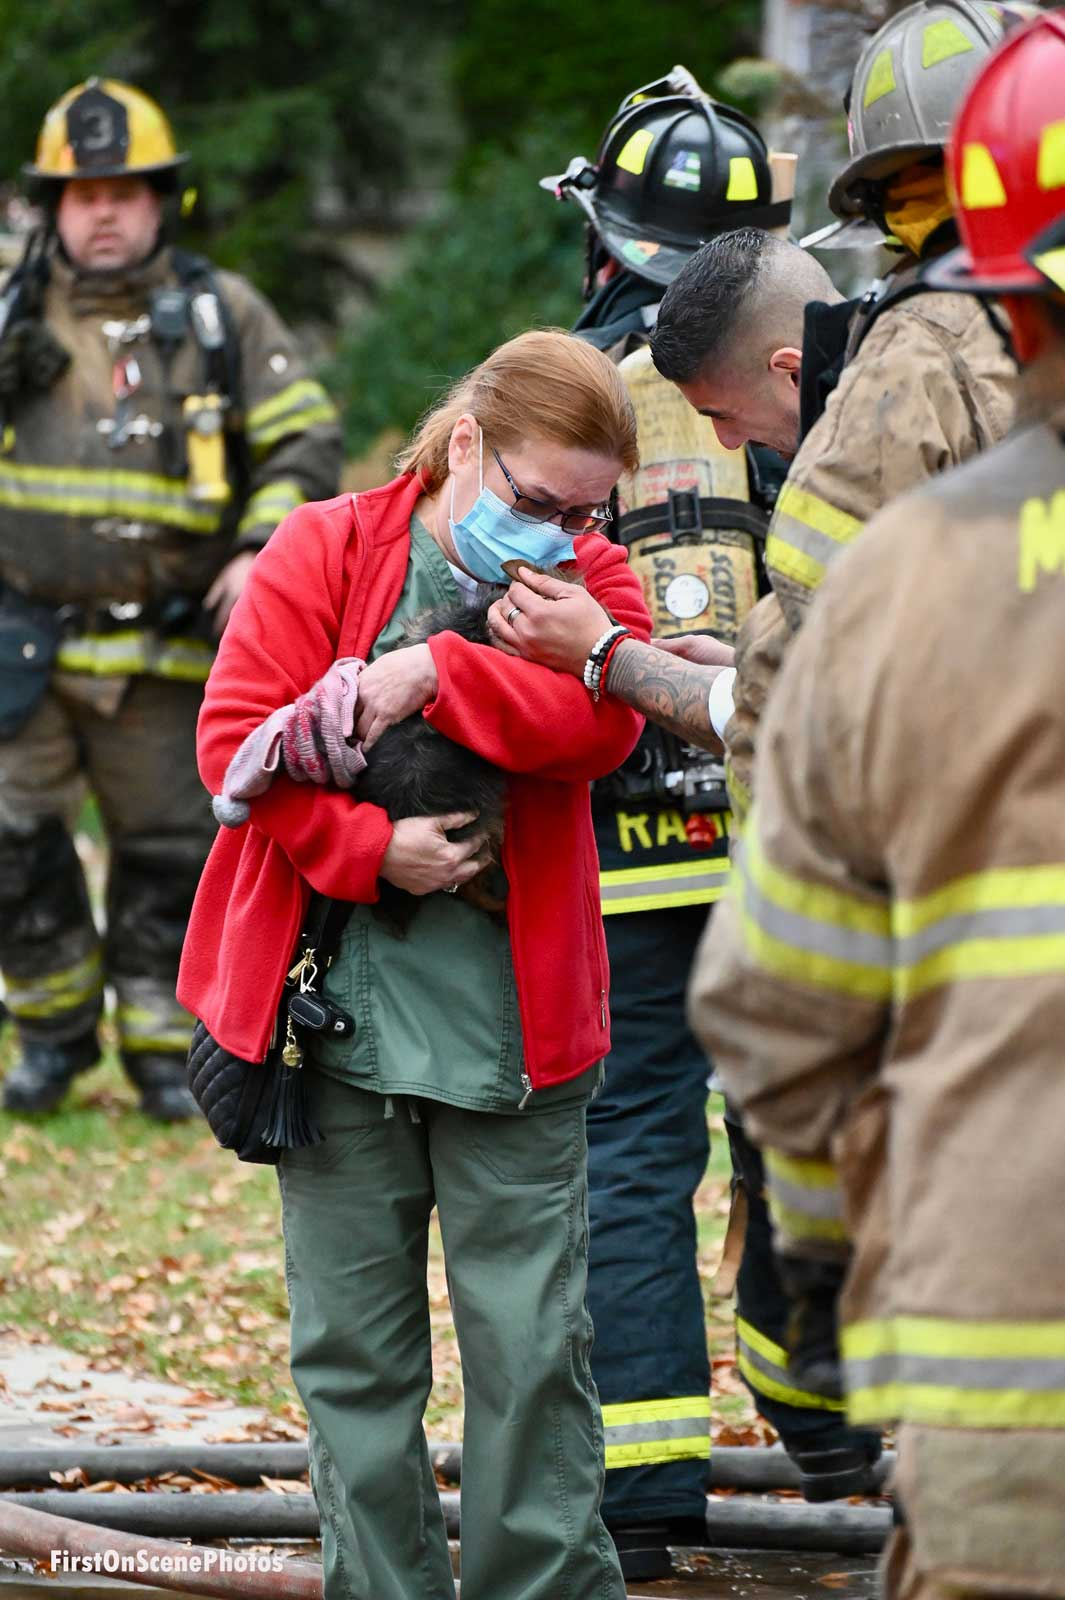 A resident cuddles a dog that firefighters rescued from a fire as firefighters look on